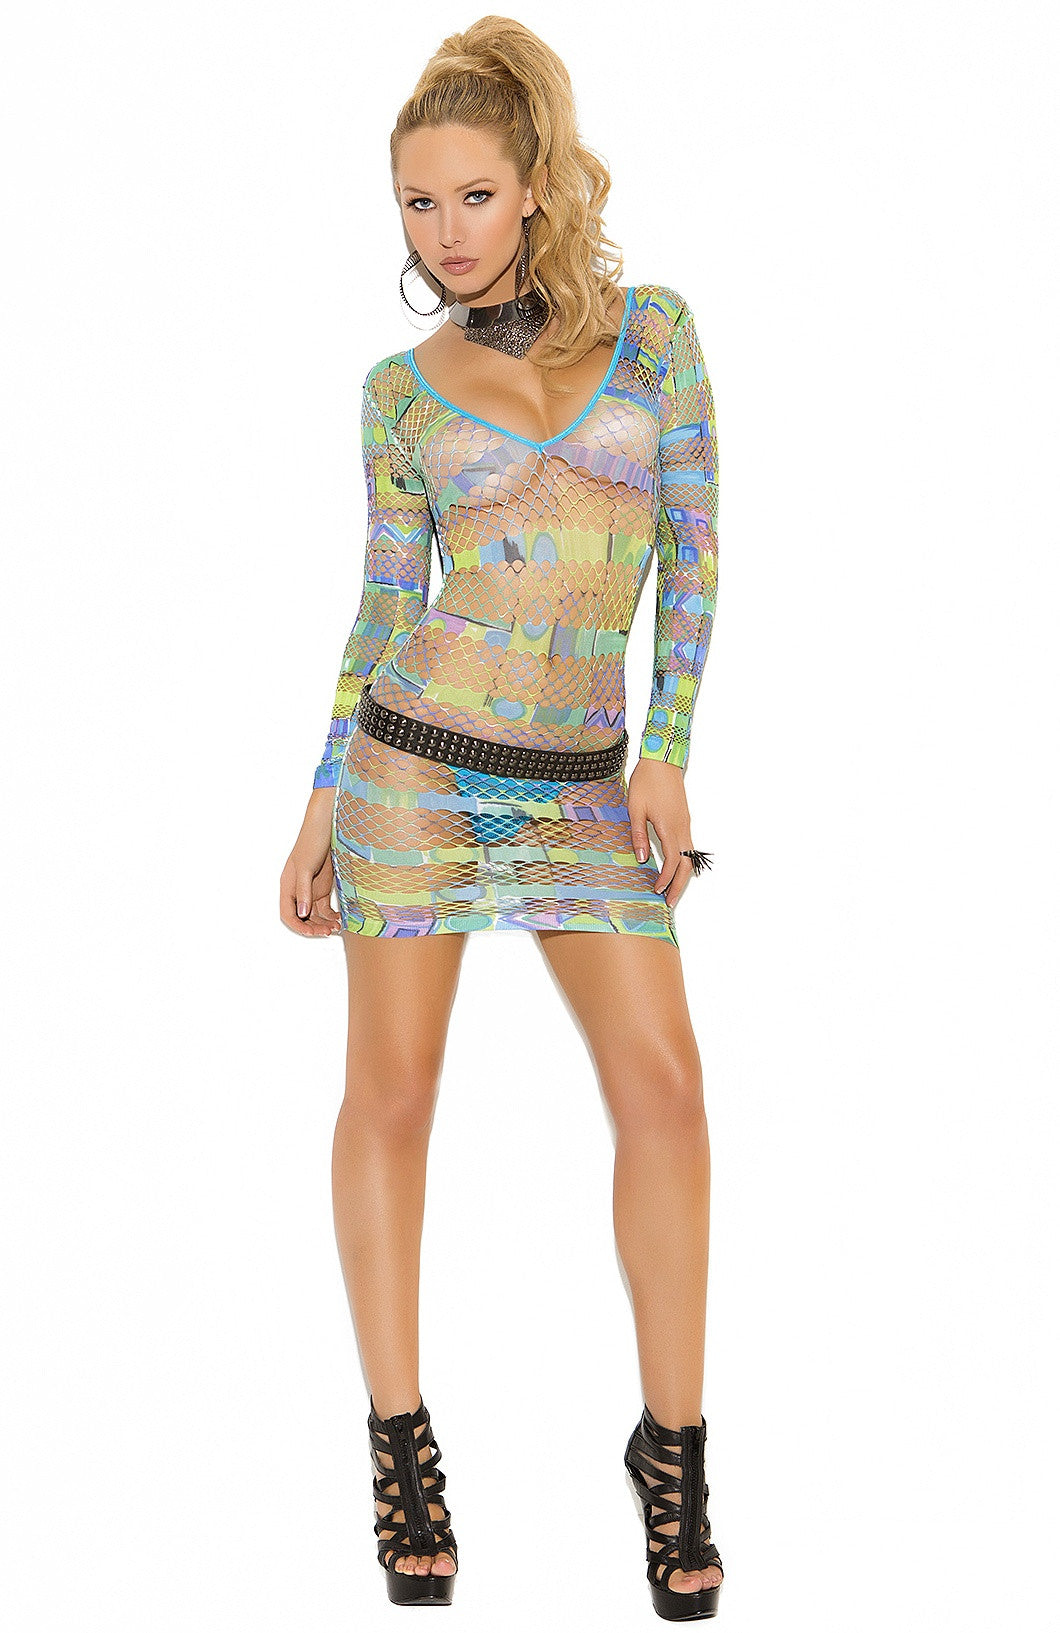 EM-8937 Colorfull fishet mini dress - Sexylingerieland  - 1